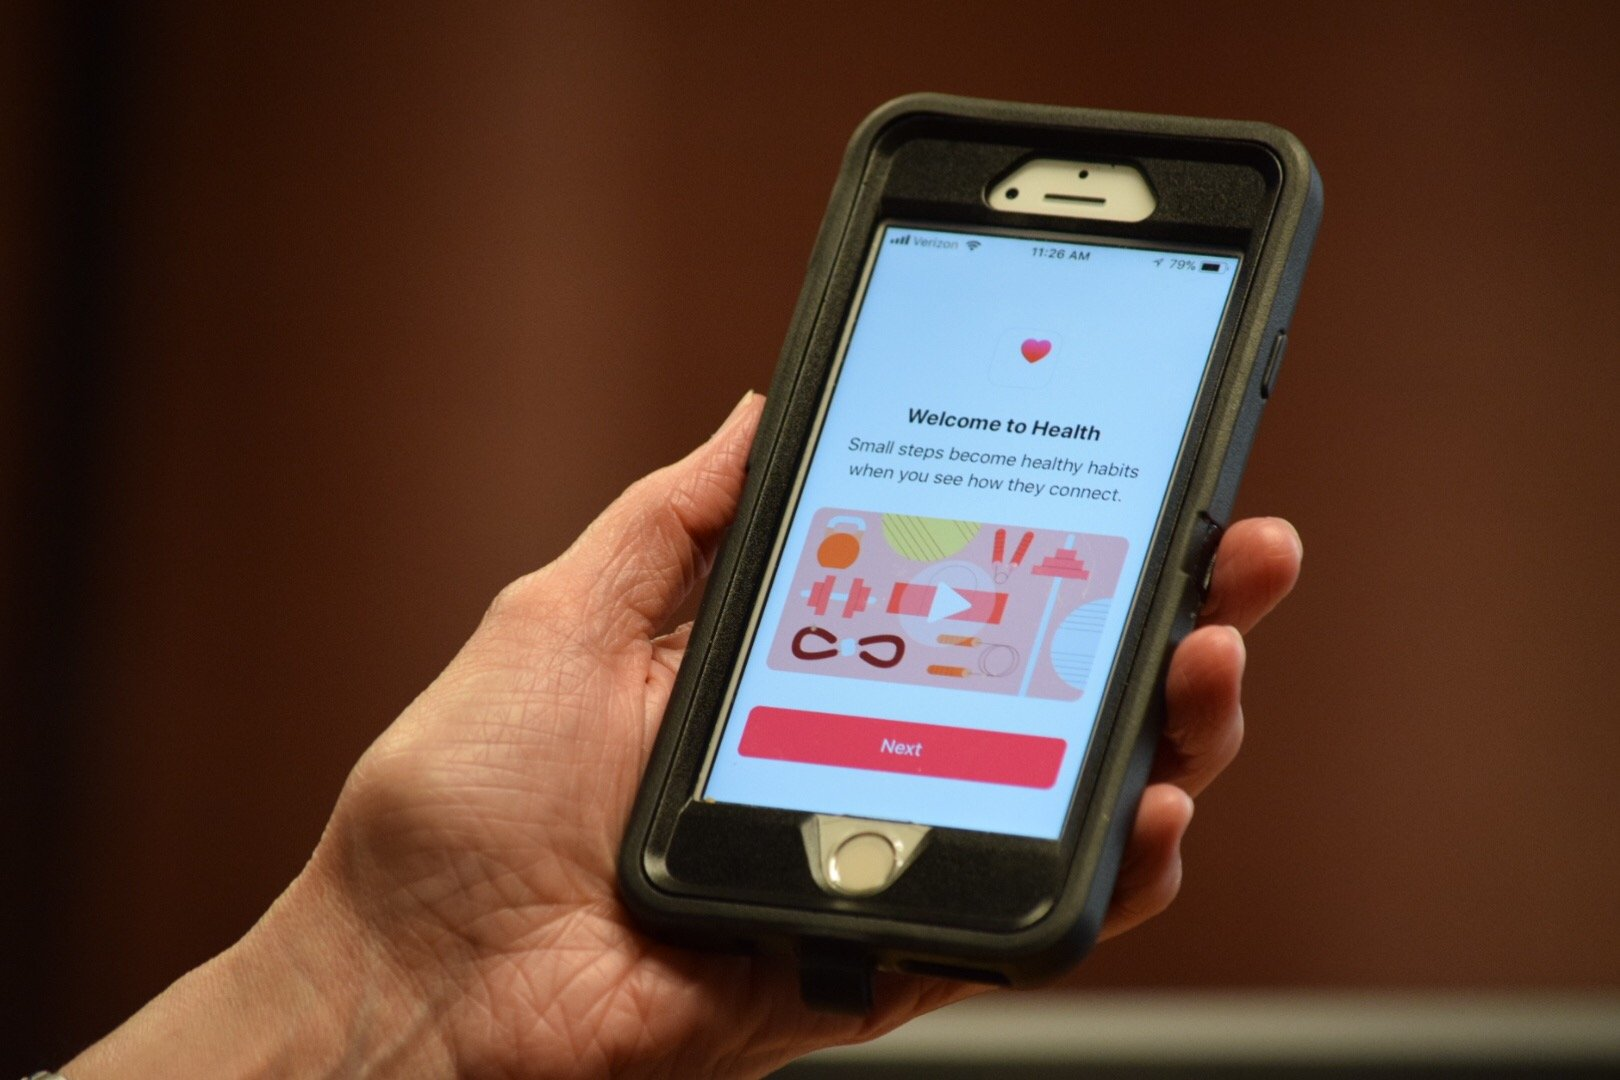 An individual holds an iPhone and prepares to use the Apple Health app.